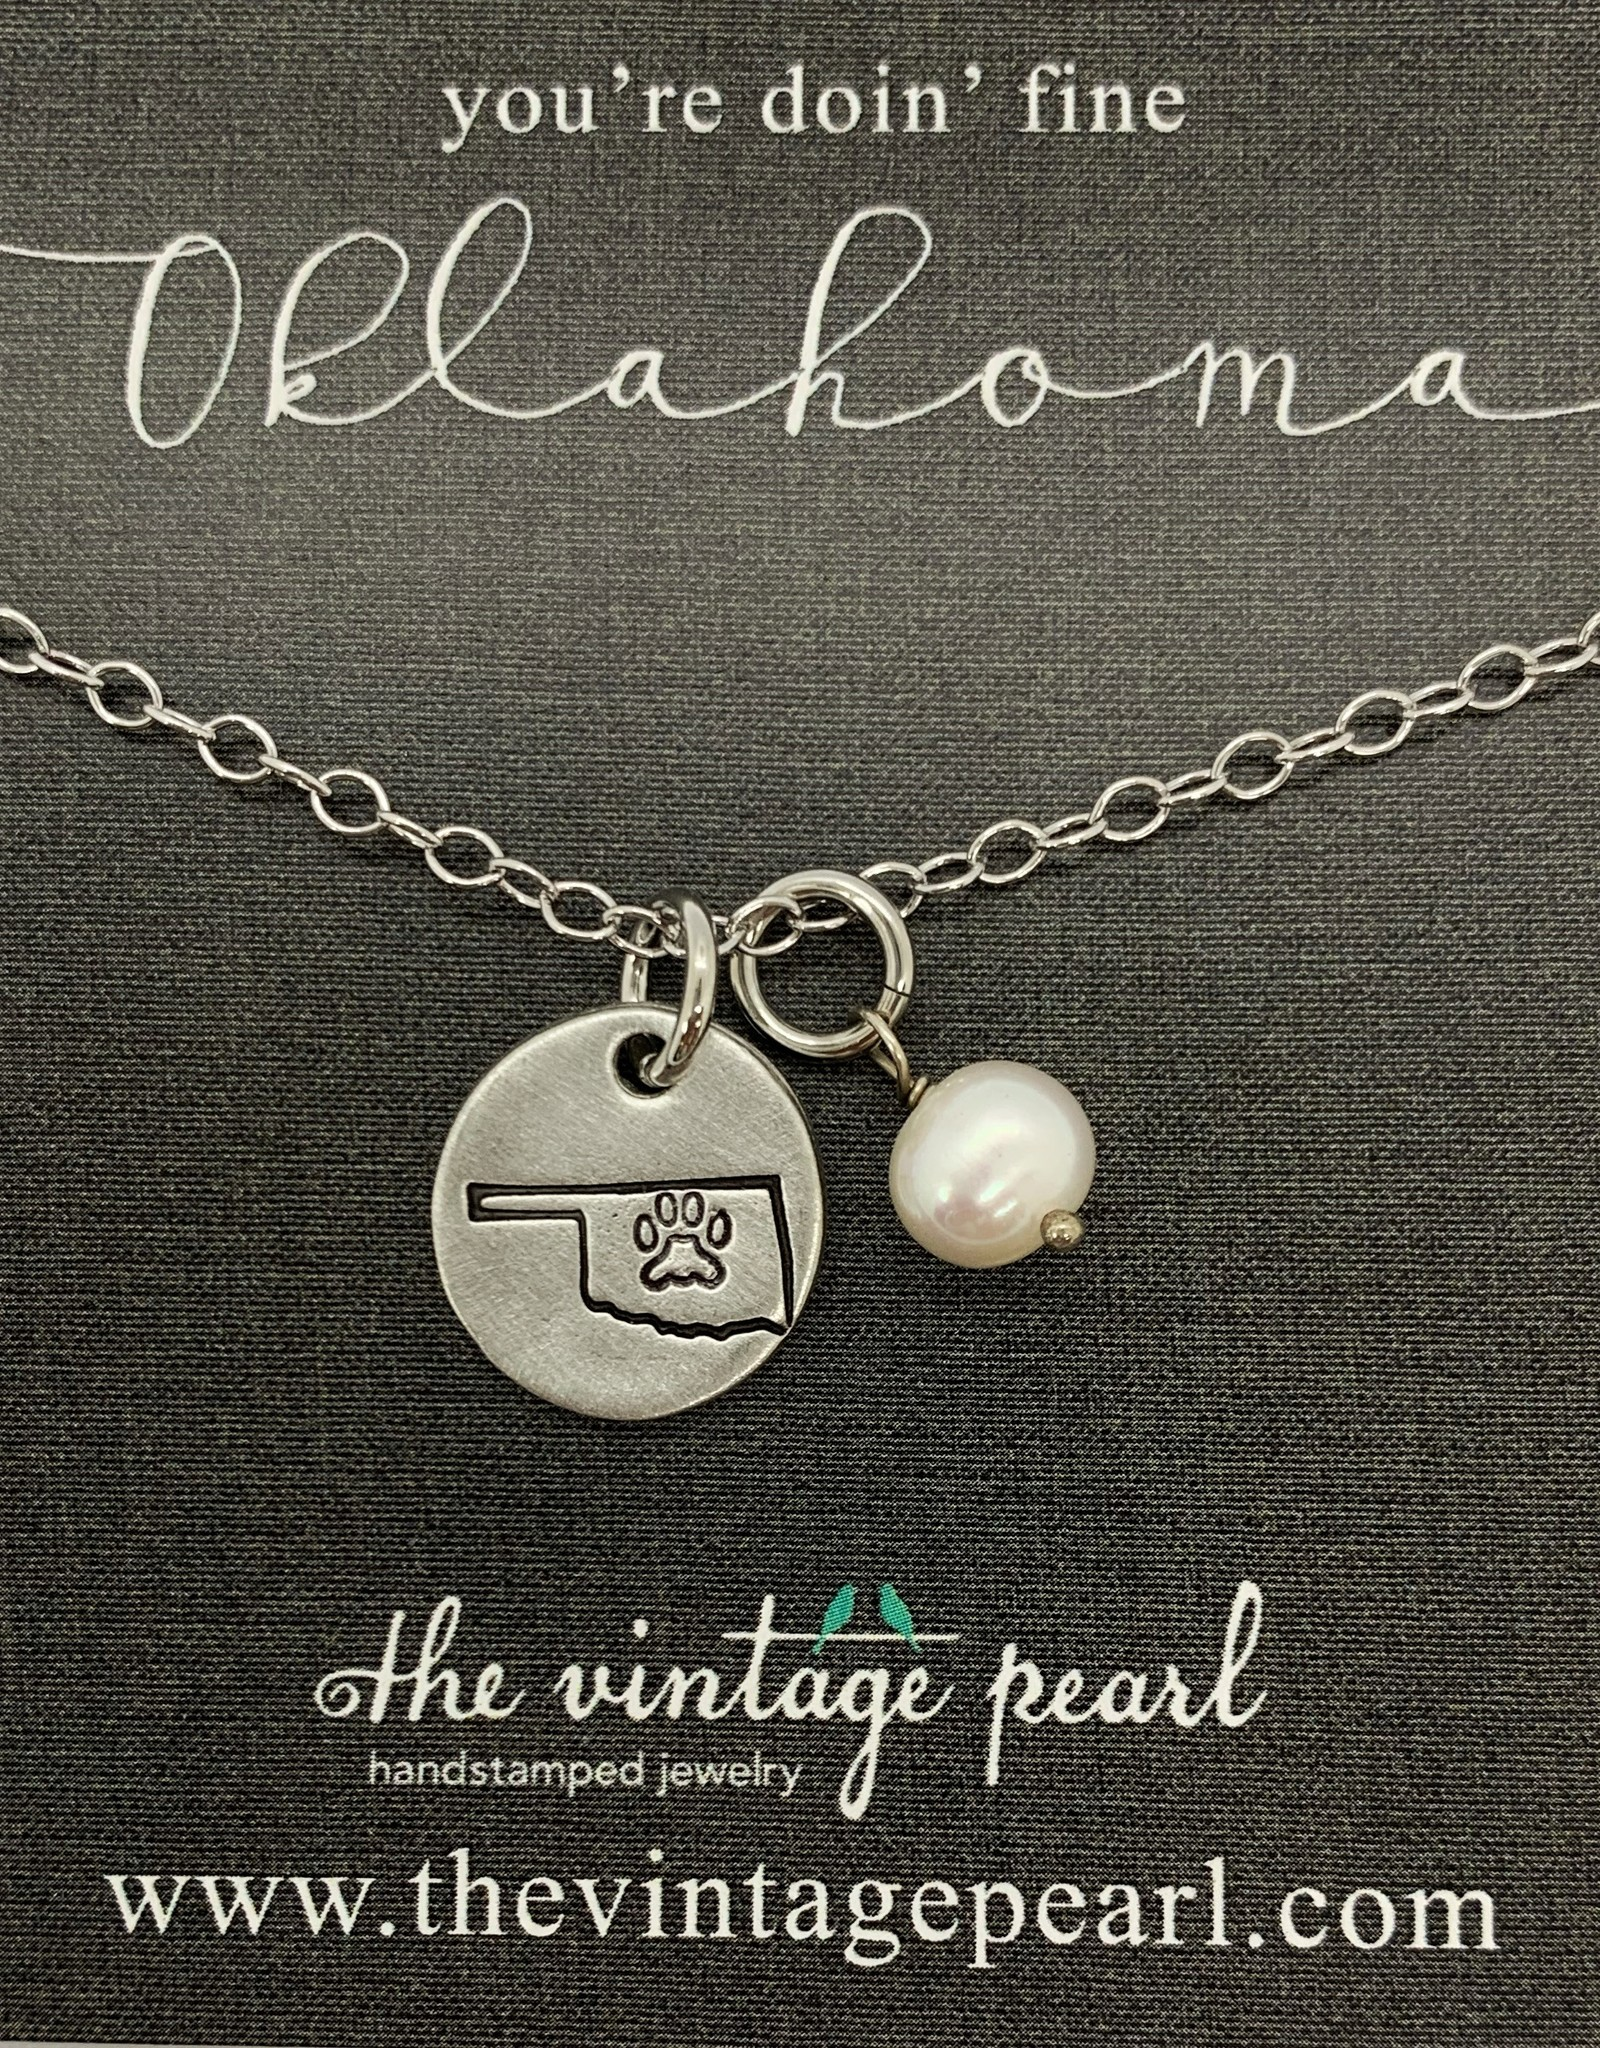 The Vintage Pearl You're Doin' Fine Necklace